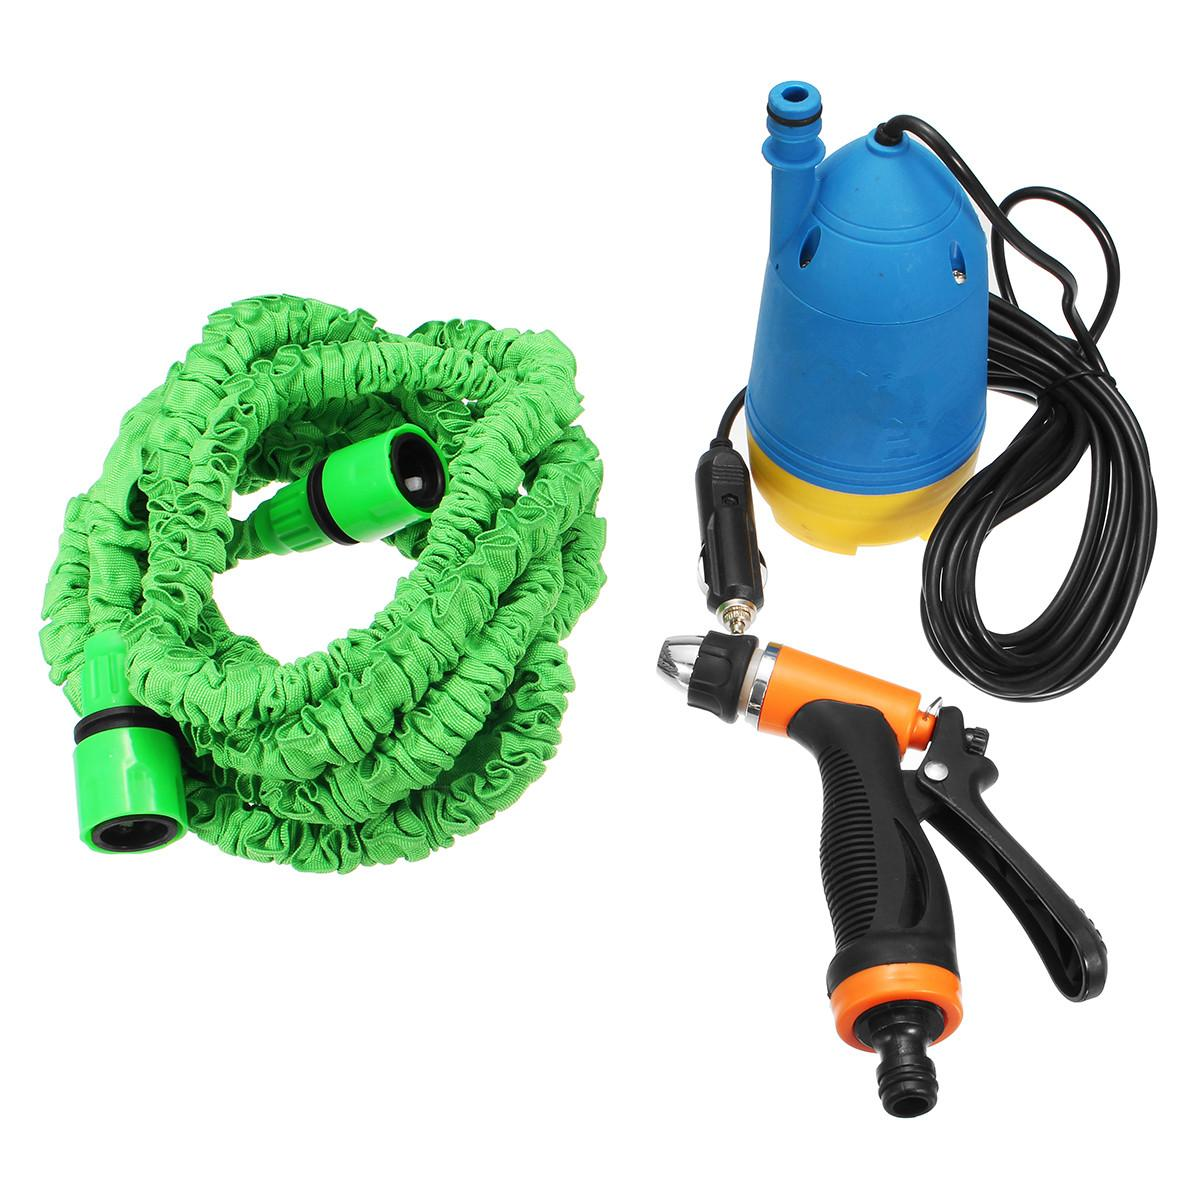 12V Portable High Pressure Car Electric Washer Auto Wash Pump Set with Hose and Water Guns